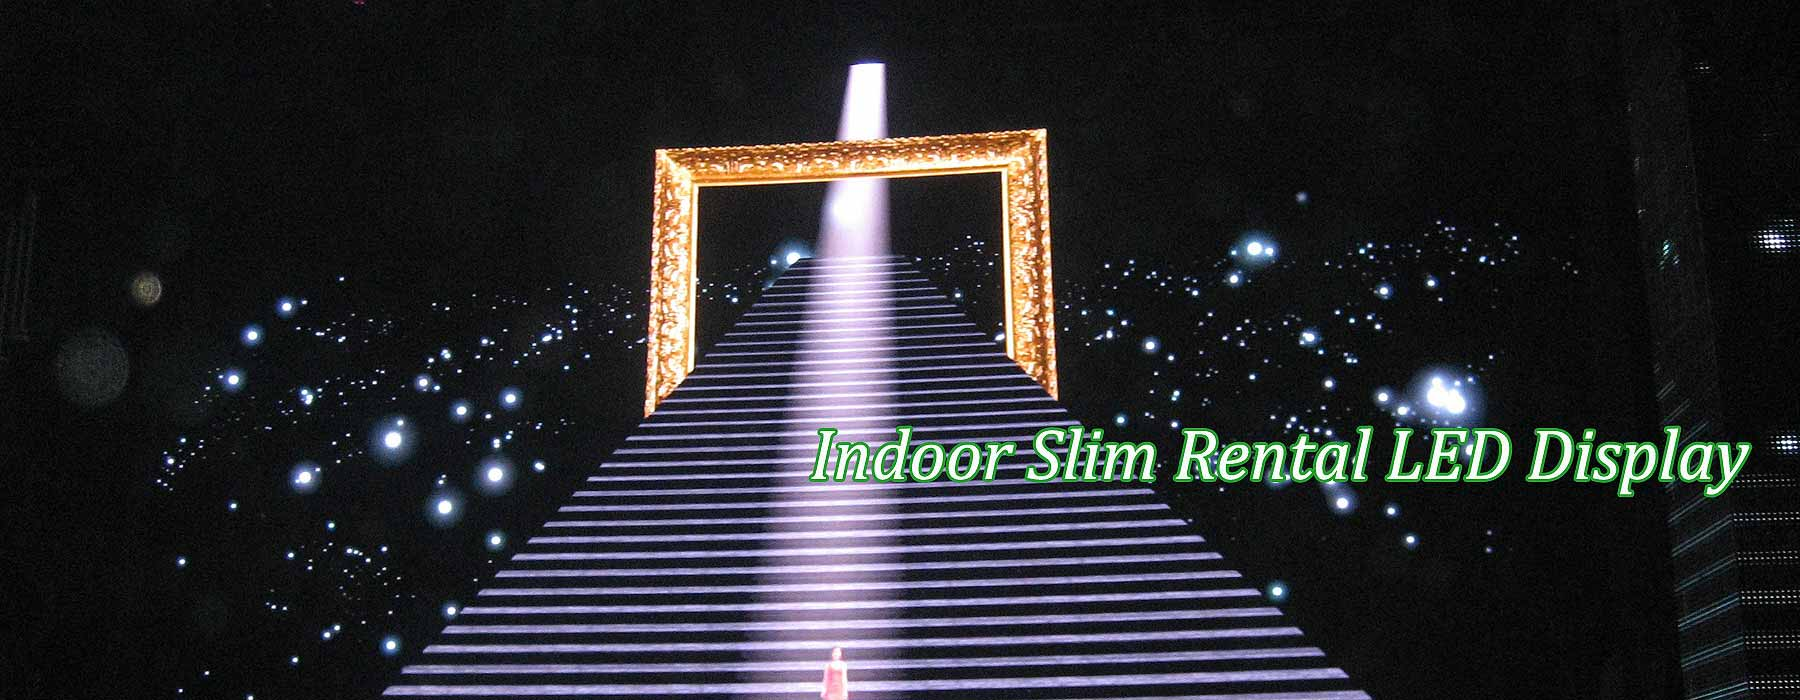 Indoor-rental-led-display1